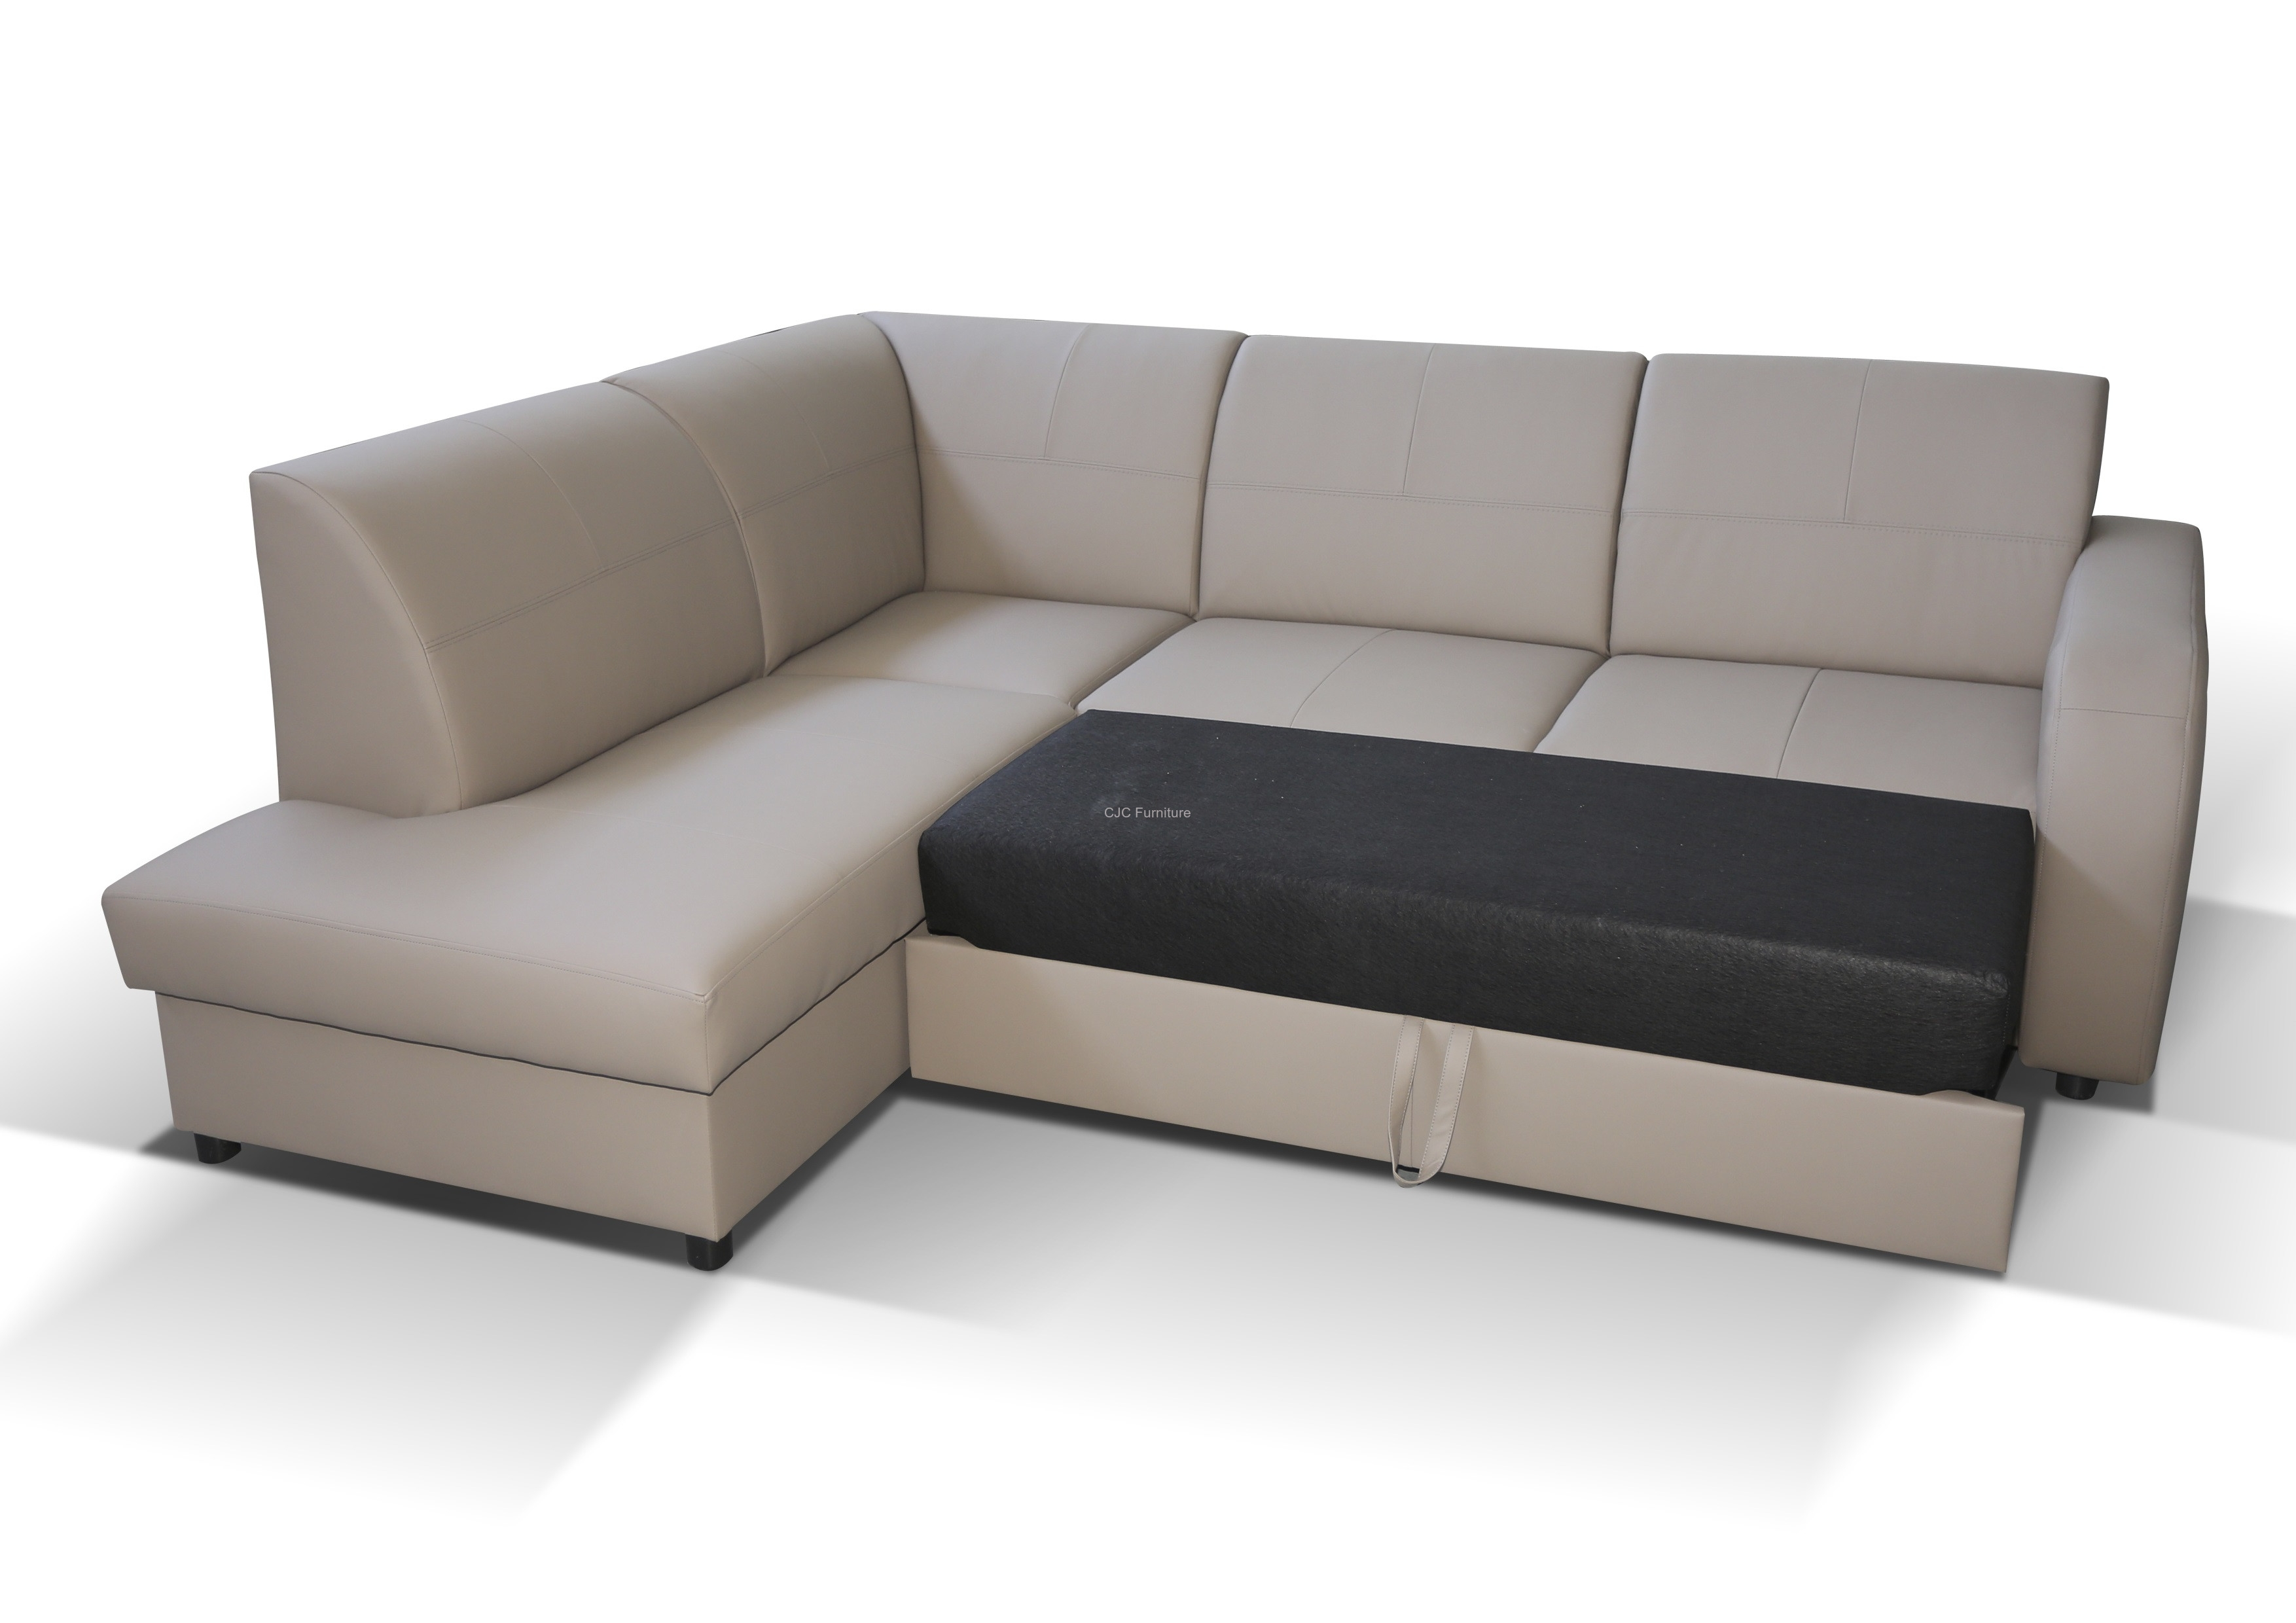 Corner Sofa Bed Style For New Home Design Eva Furniture For Corner Couch Bed (Photo 10 of 15)